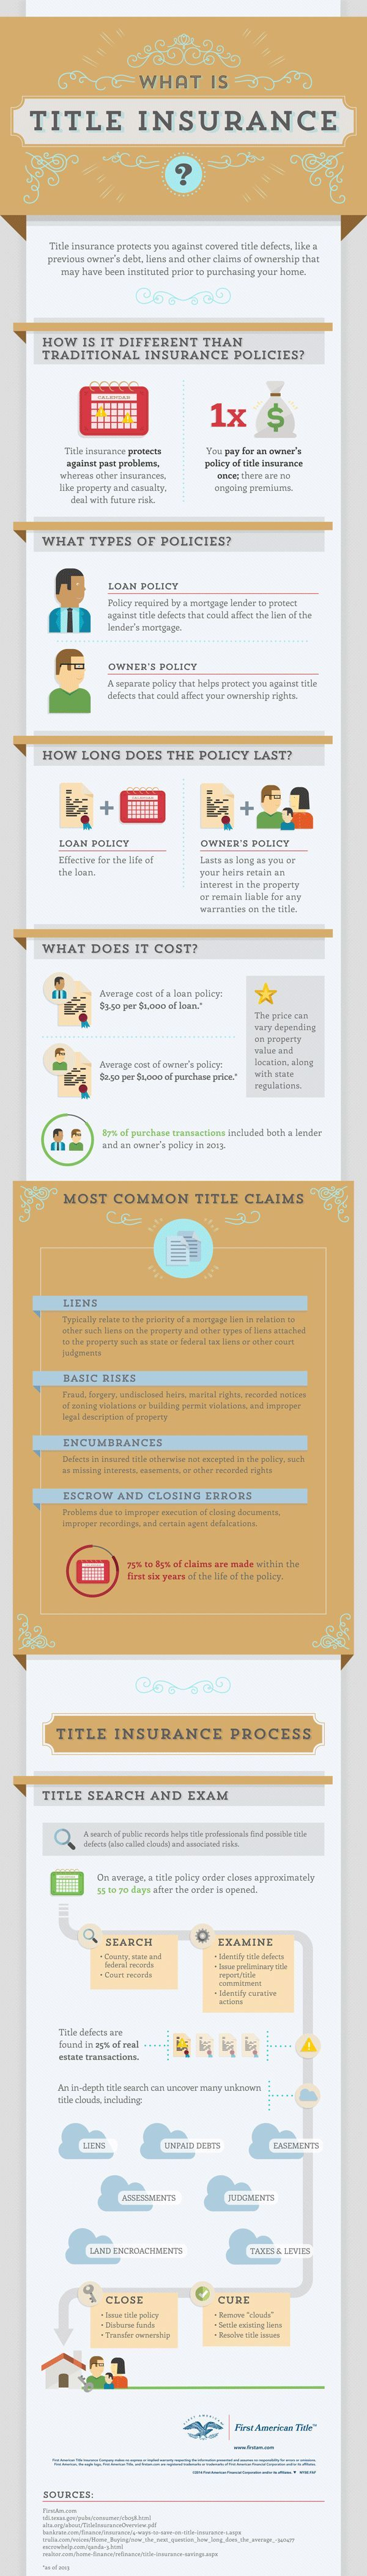 Title Insurance Examples Of Problems And Advice Title Insurance